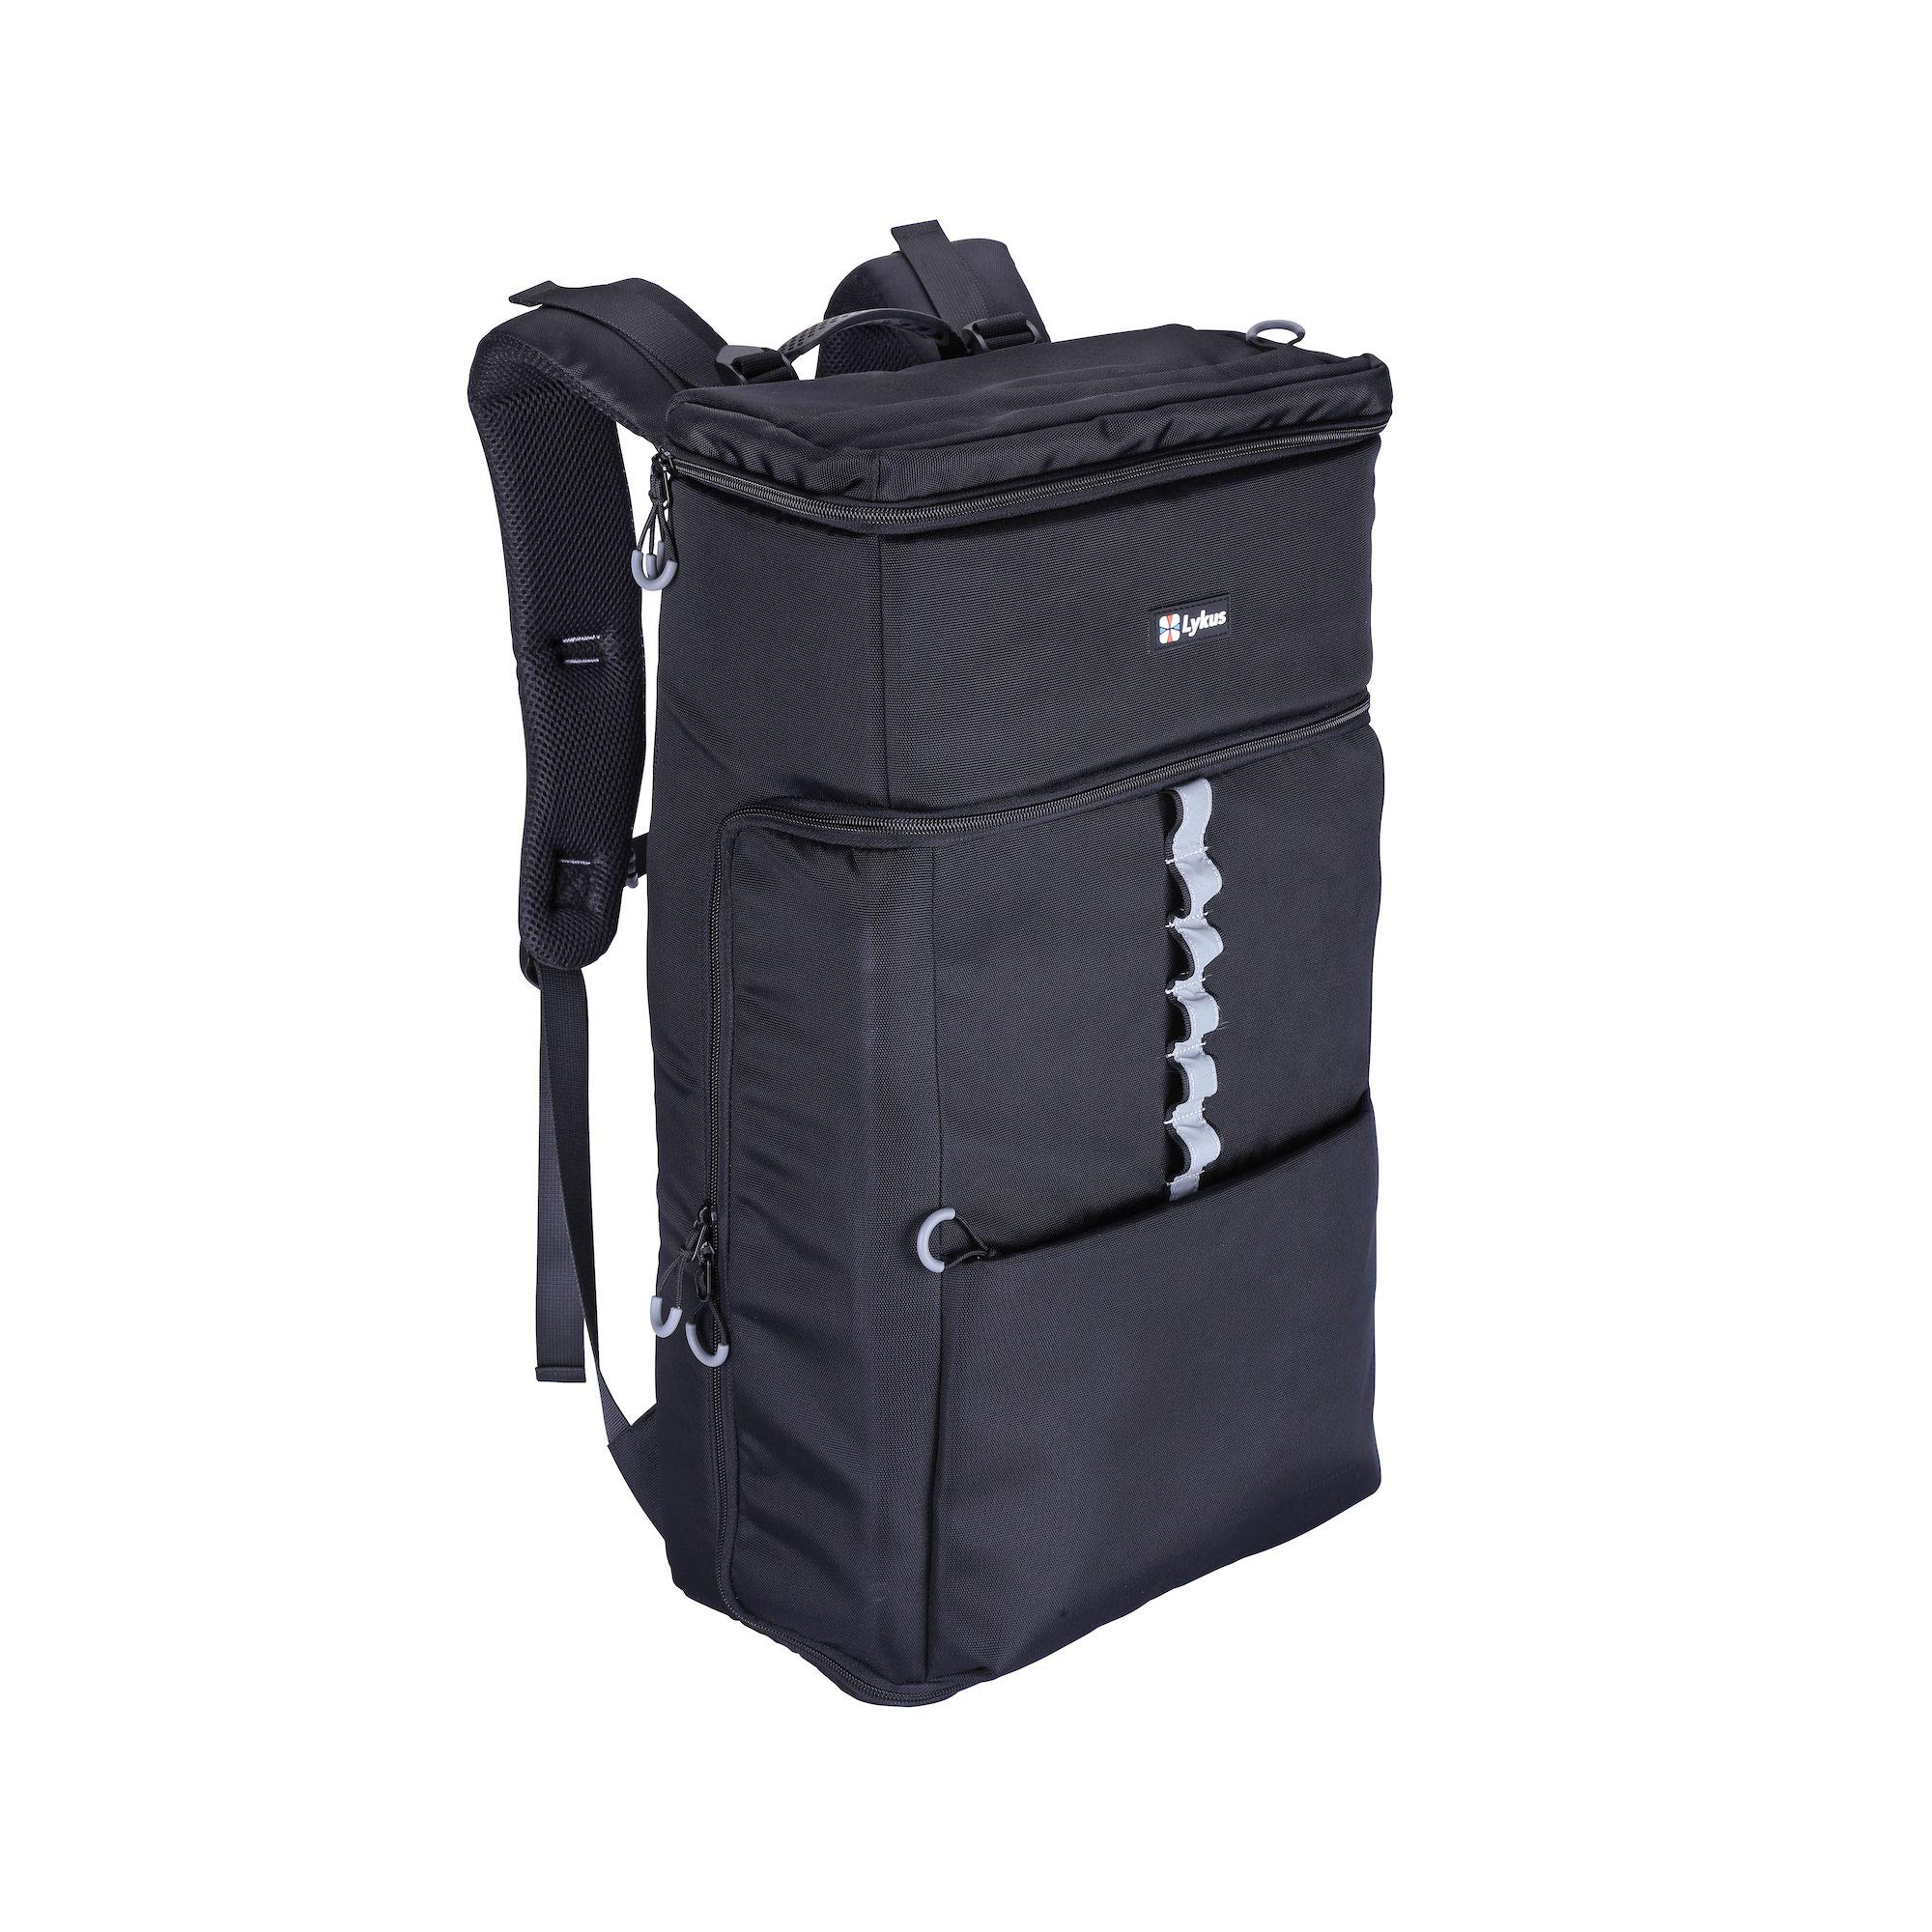 Lykus RS1 Travel Backpack for DJI Ronin-S, Camera, and Lens, Must-Have Backpack for Ronin-S